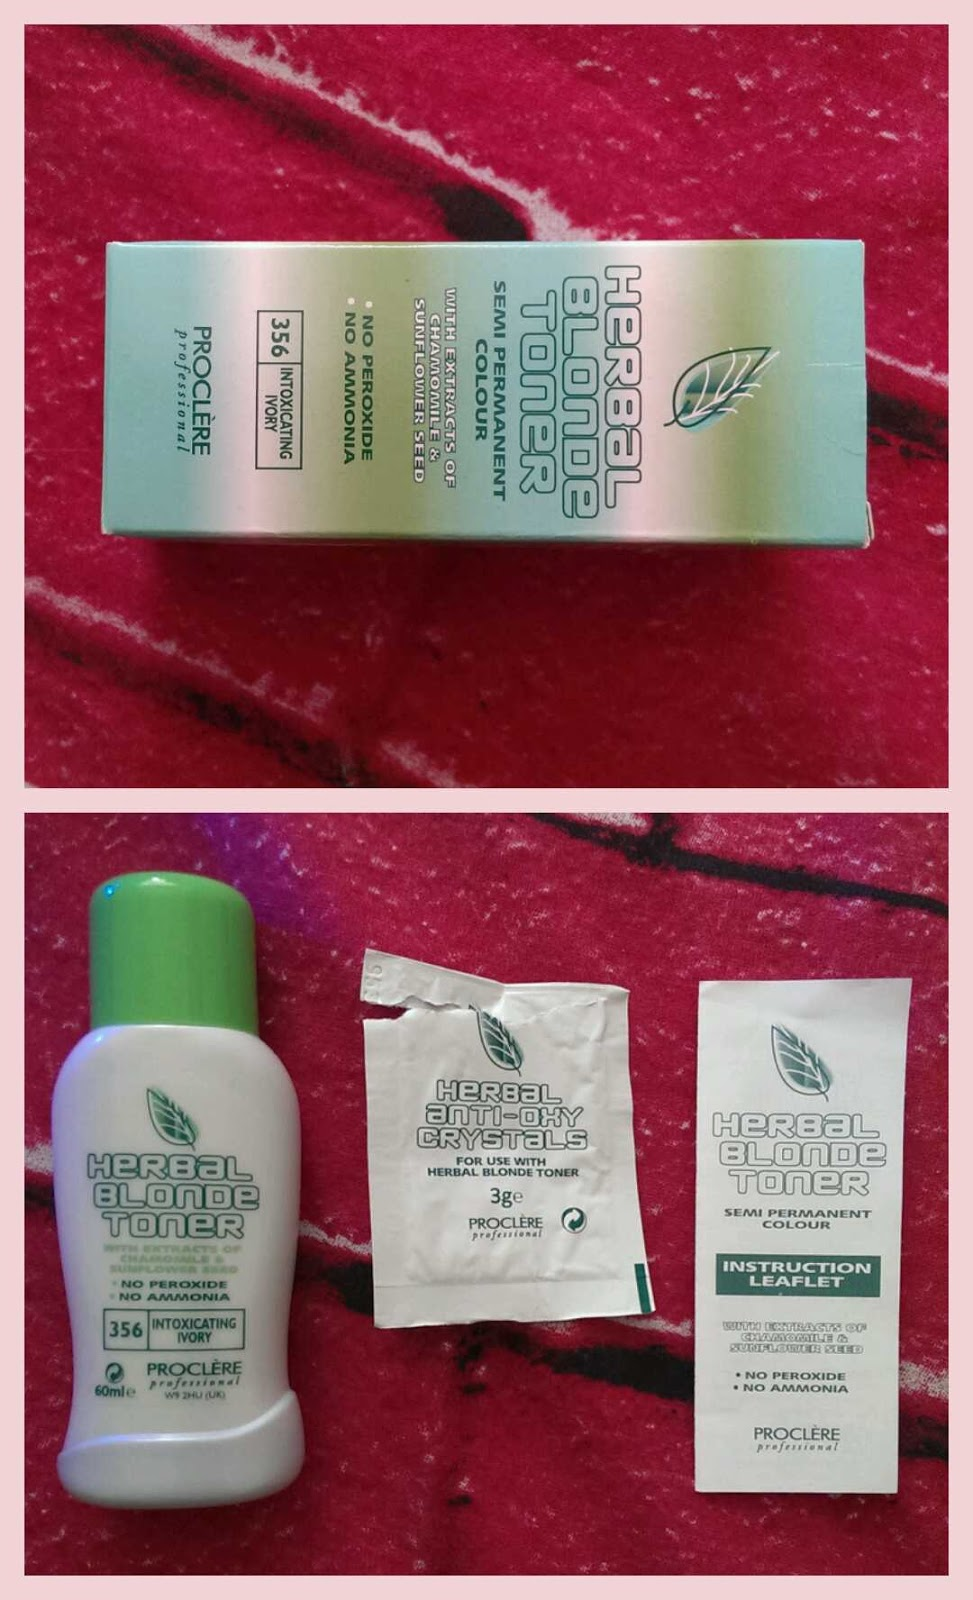 Lost Found Proclre Herbal Toner Review 60ml The Itself Comes In A Bottle Along With Sachet Of Anti Oxy Crystals That You Pop Into It Is Recommended Use These If Have